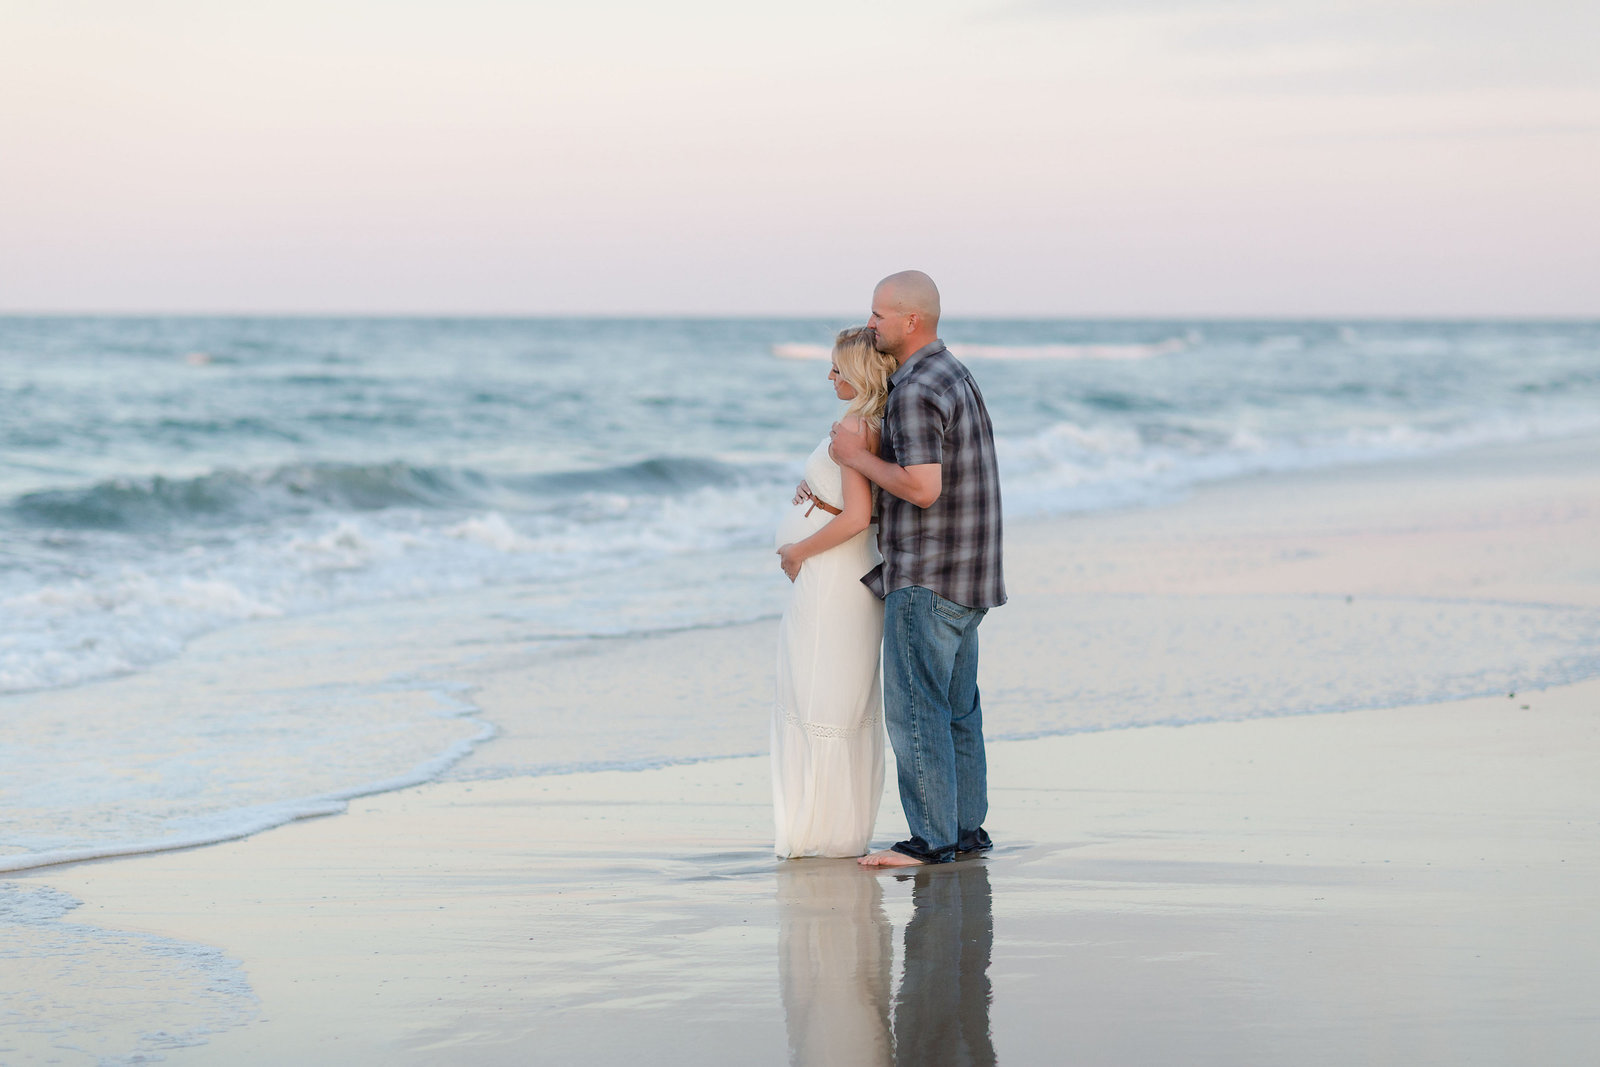 Beautiful Ocean Inspired maternity session by brooke tucker photography